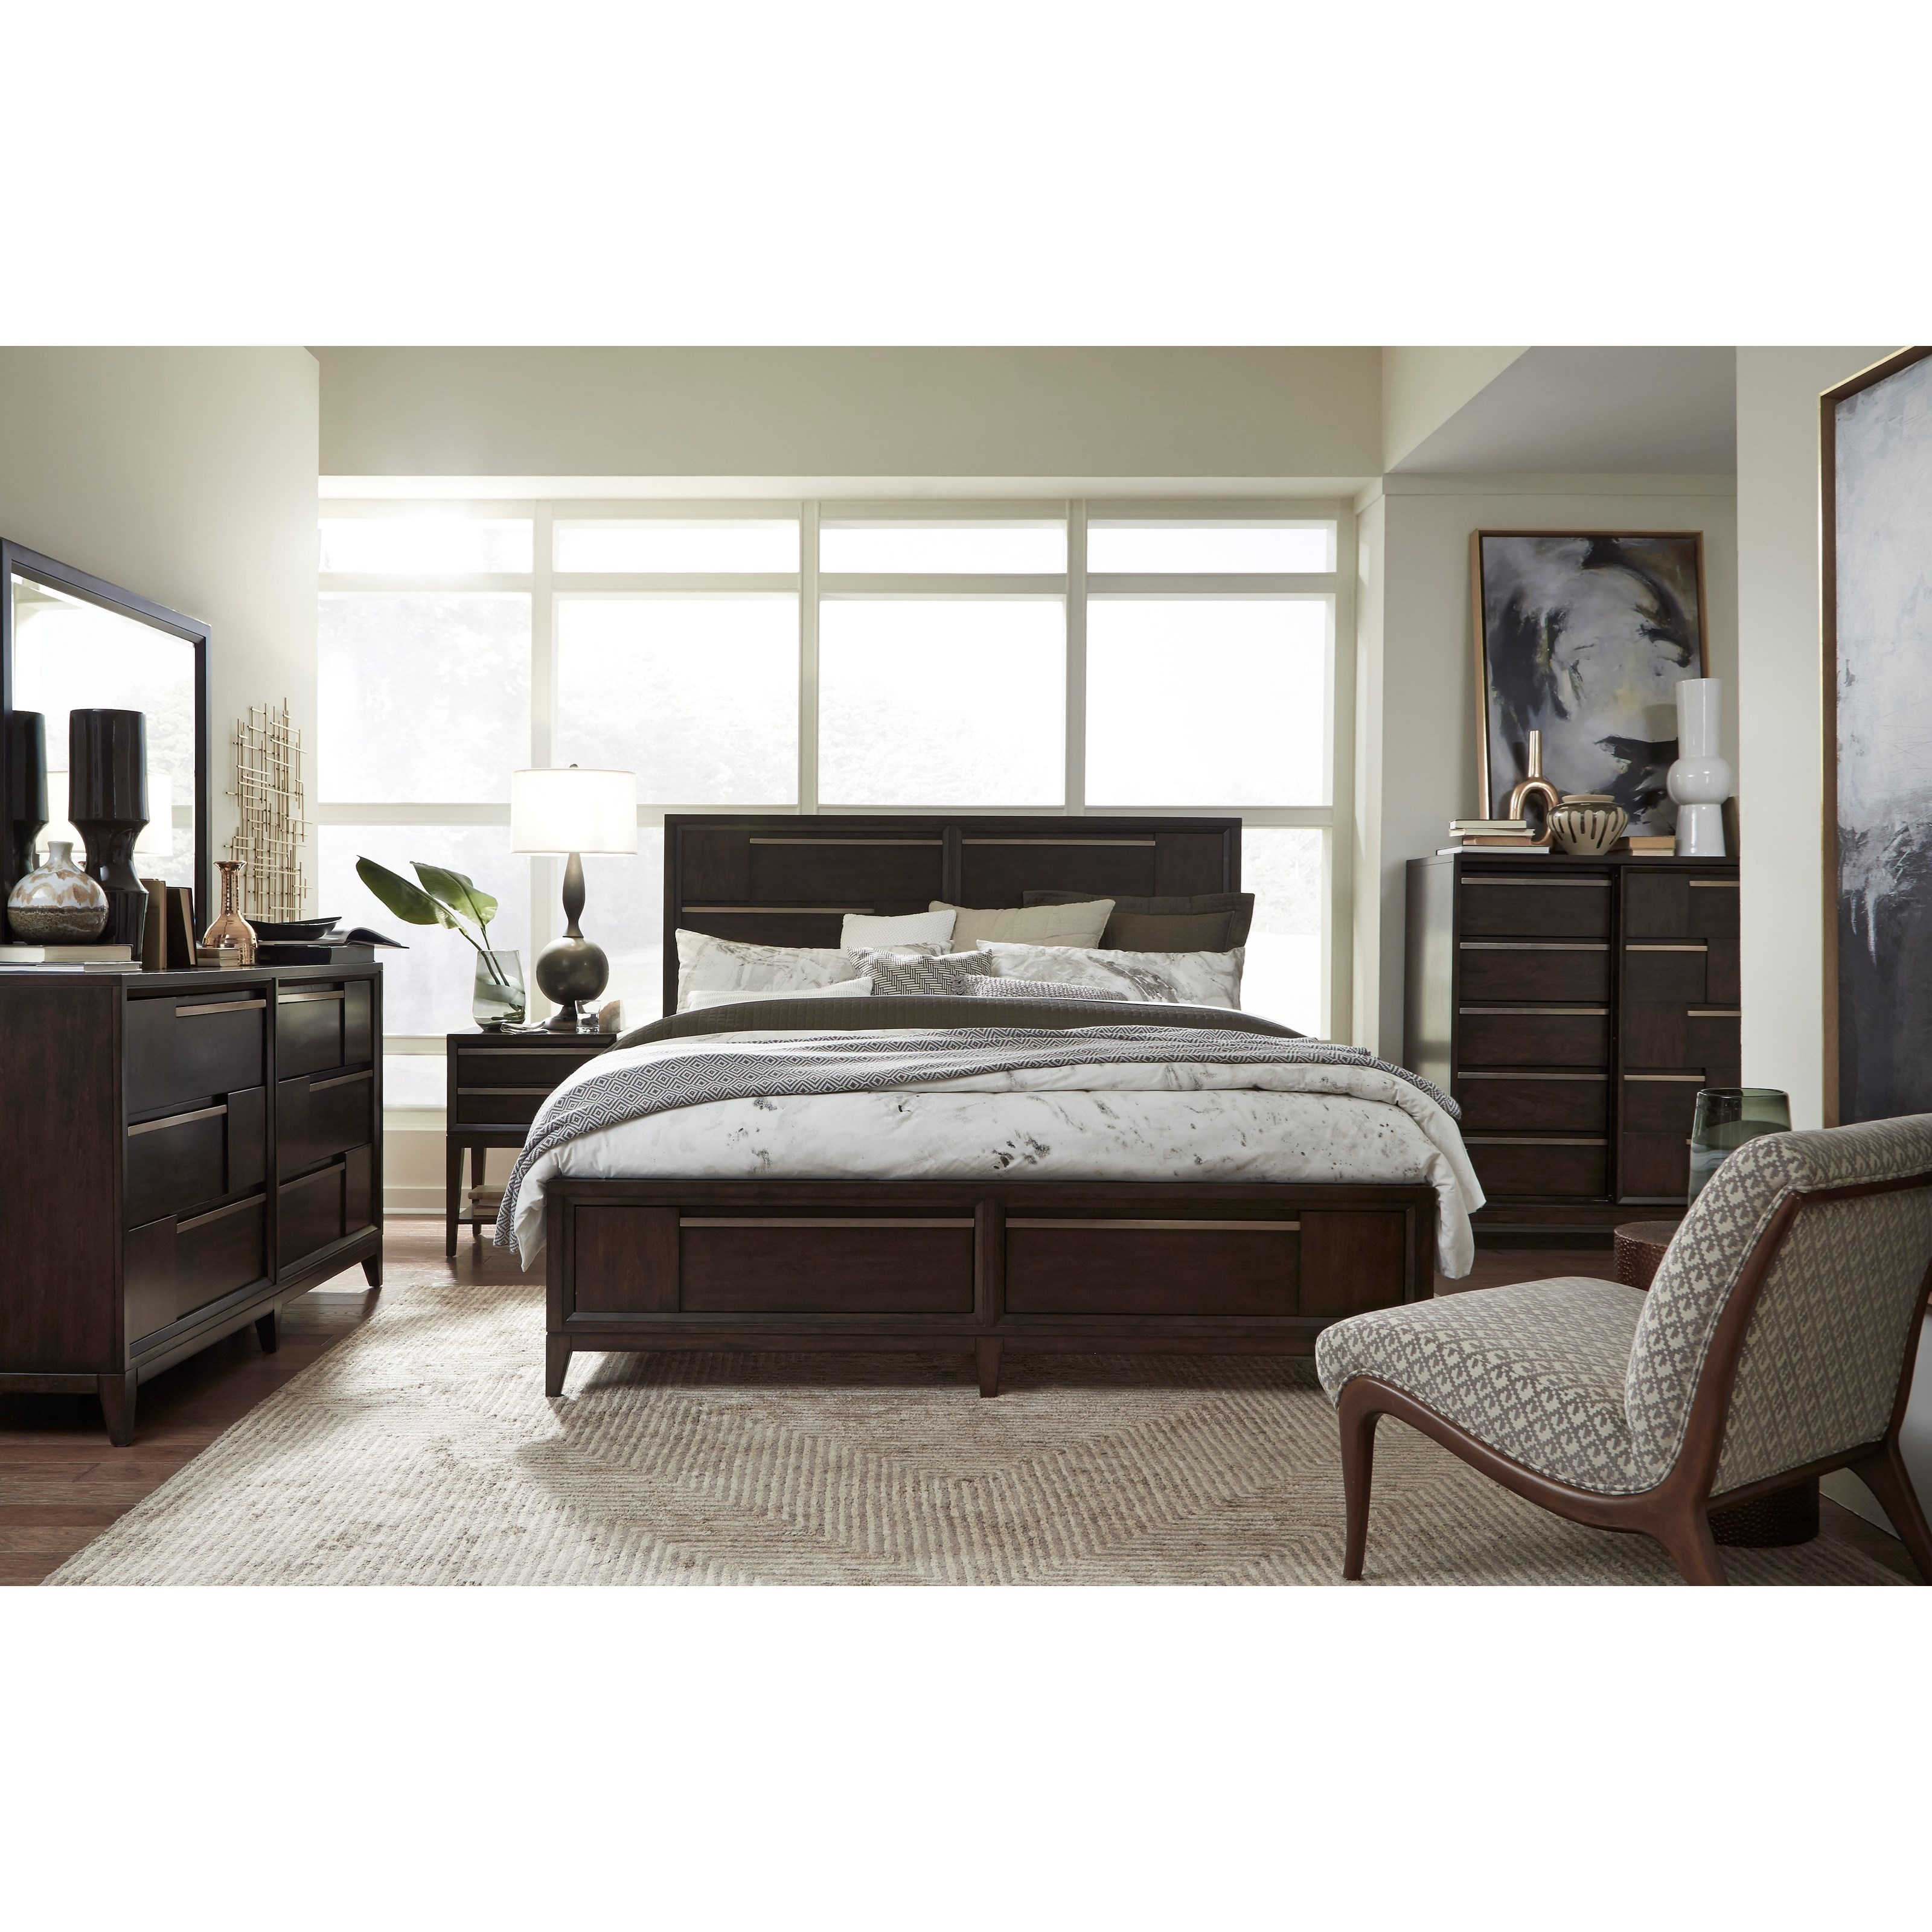 Modern Geometry California King Bedroom Group by Magnussen Home at Suburban Furniture